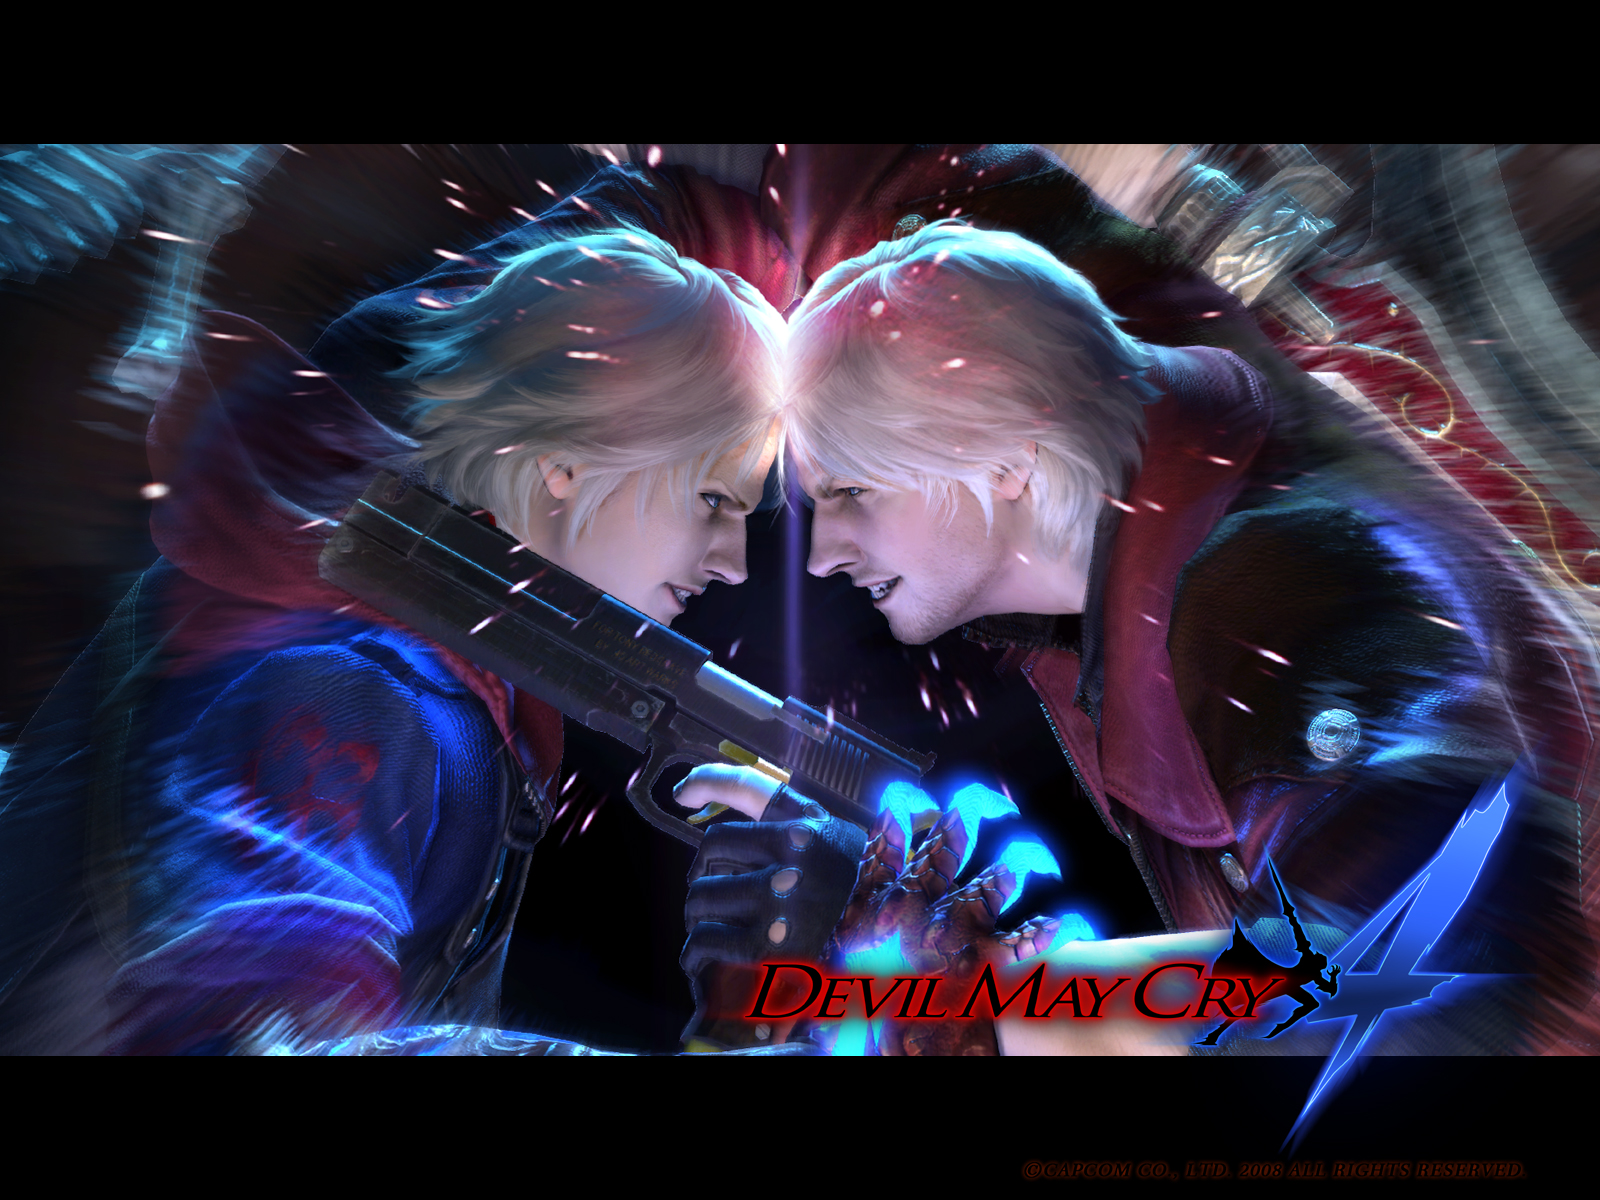 Devil May Cry Fanarts Dmc4wp9full